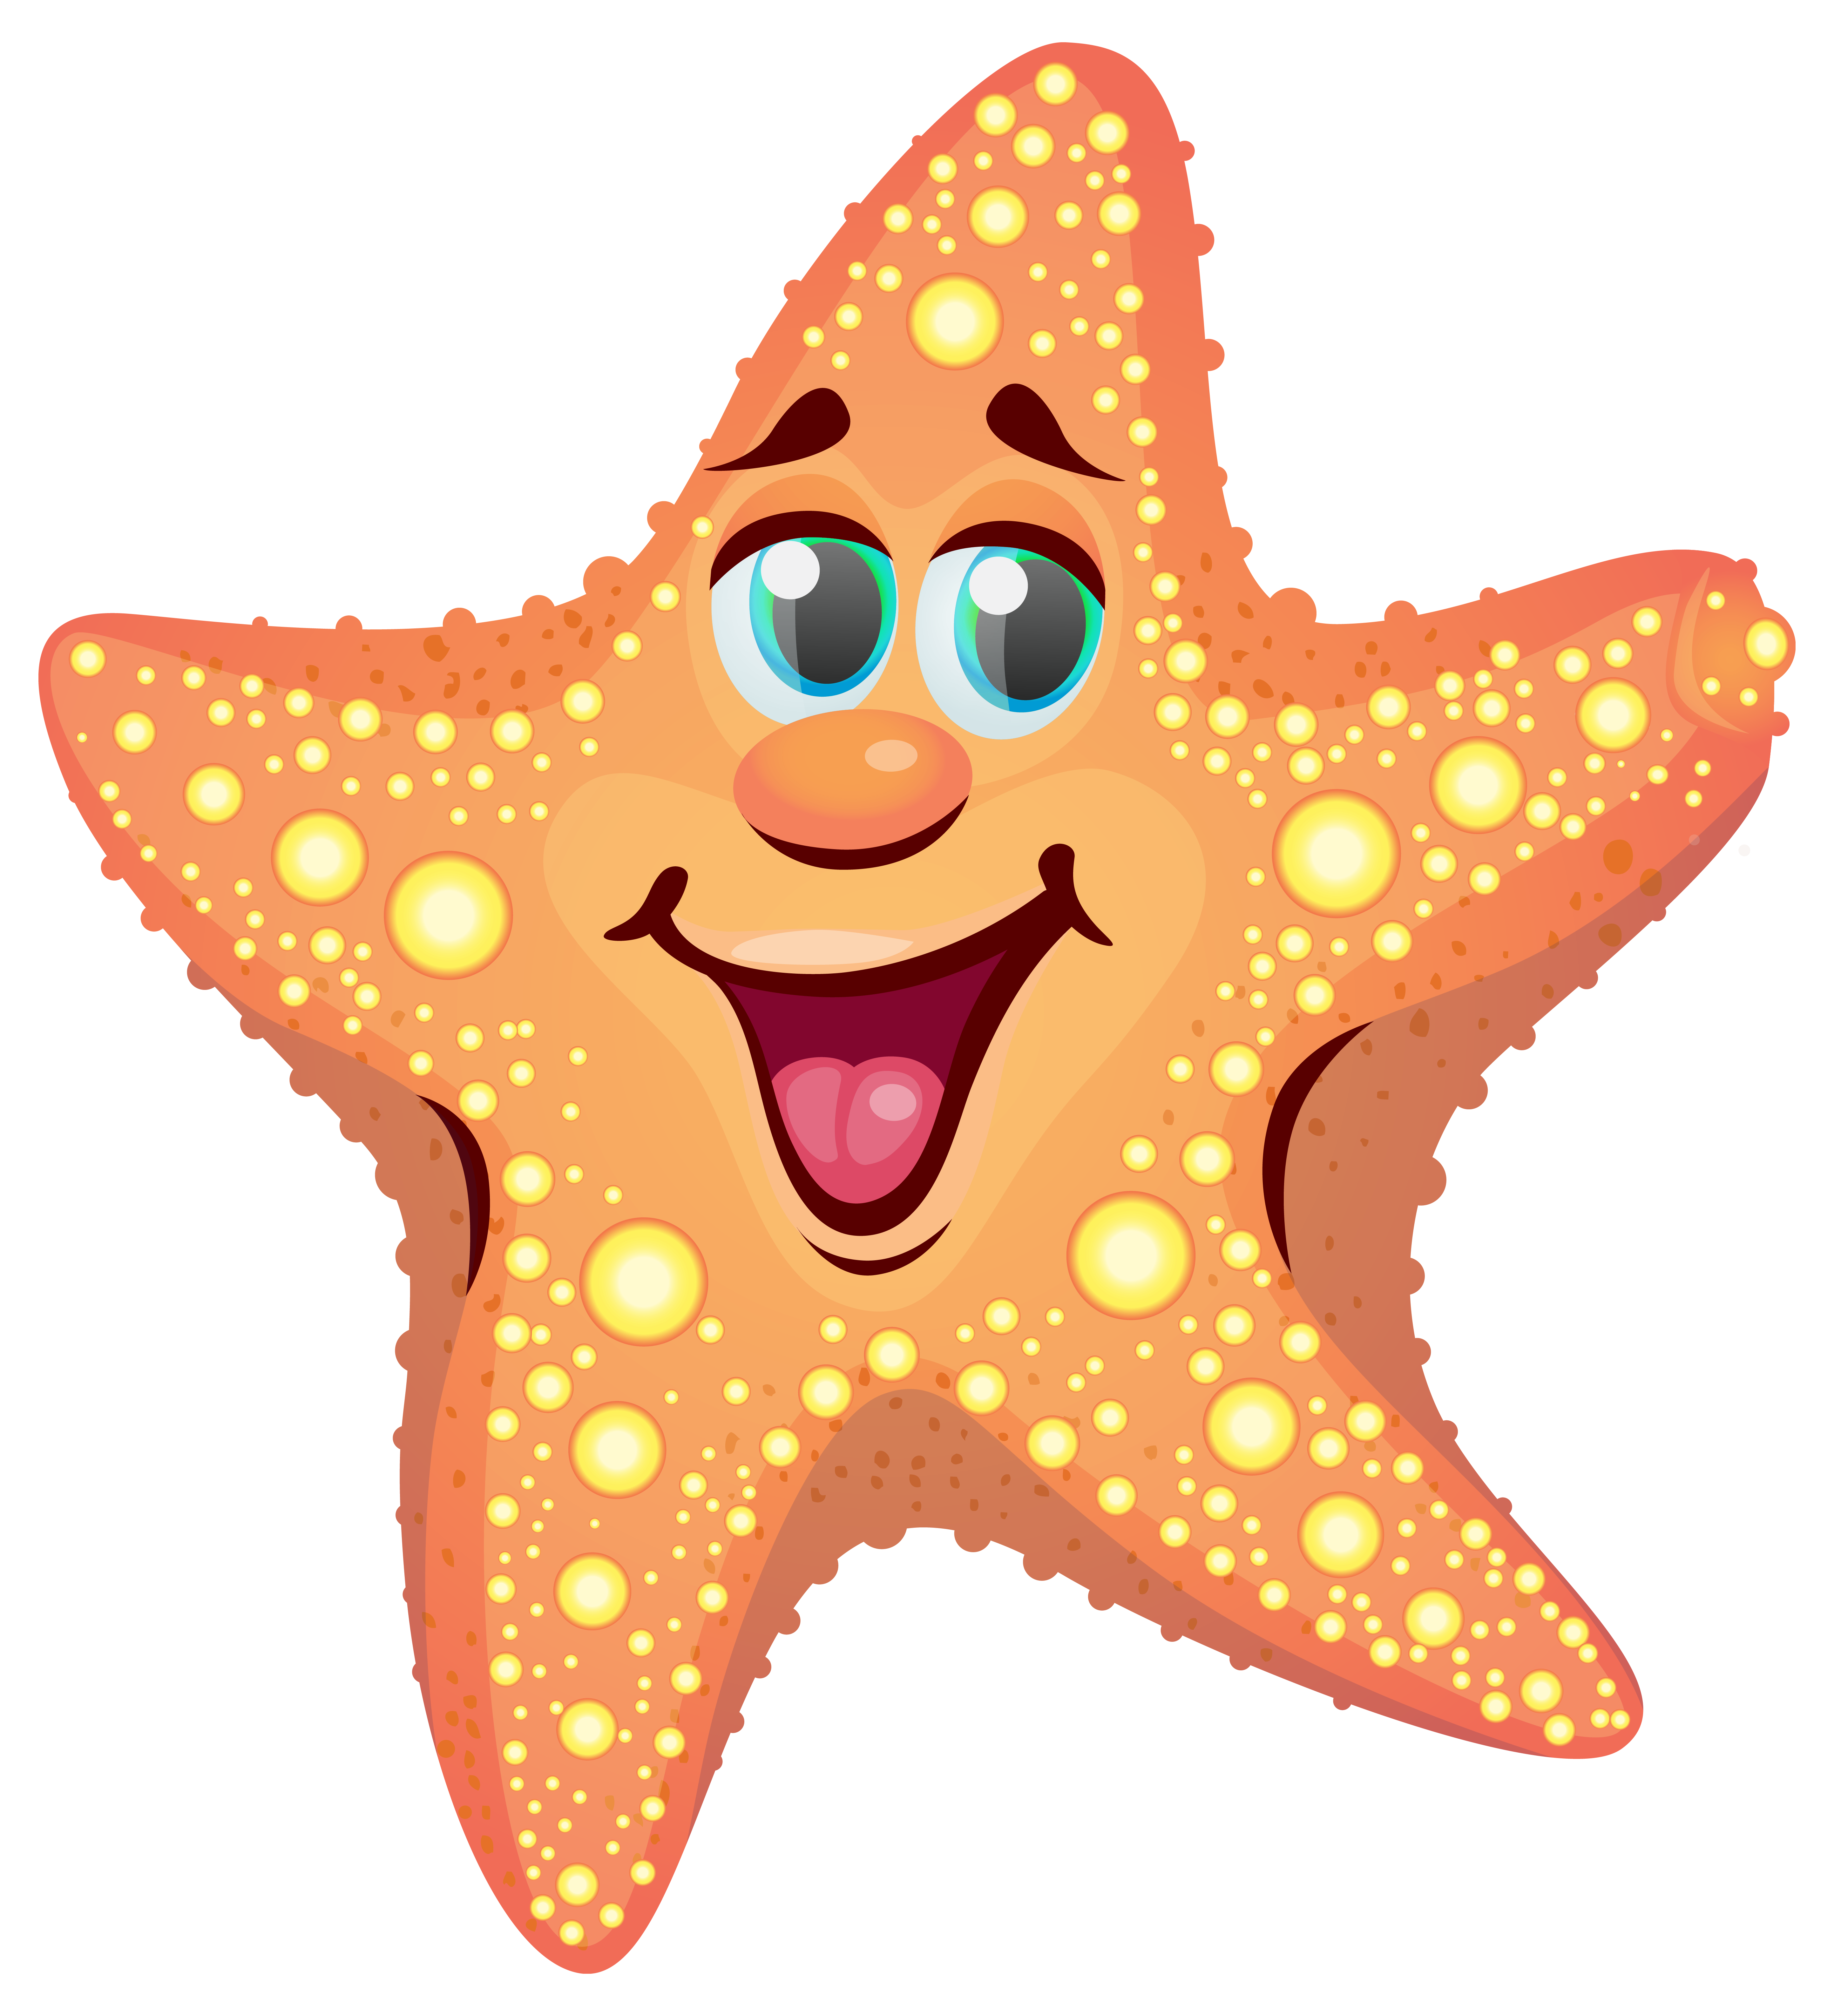 Fish swimming in money clipart image library Cartoon Starfish PNG Clipart Image | Guppy... | Pinterest | Cartoon ... image library